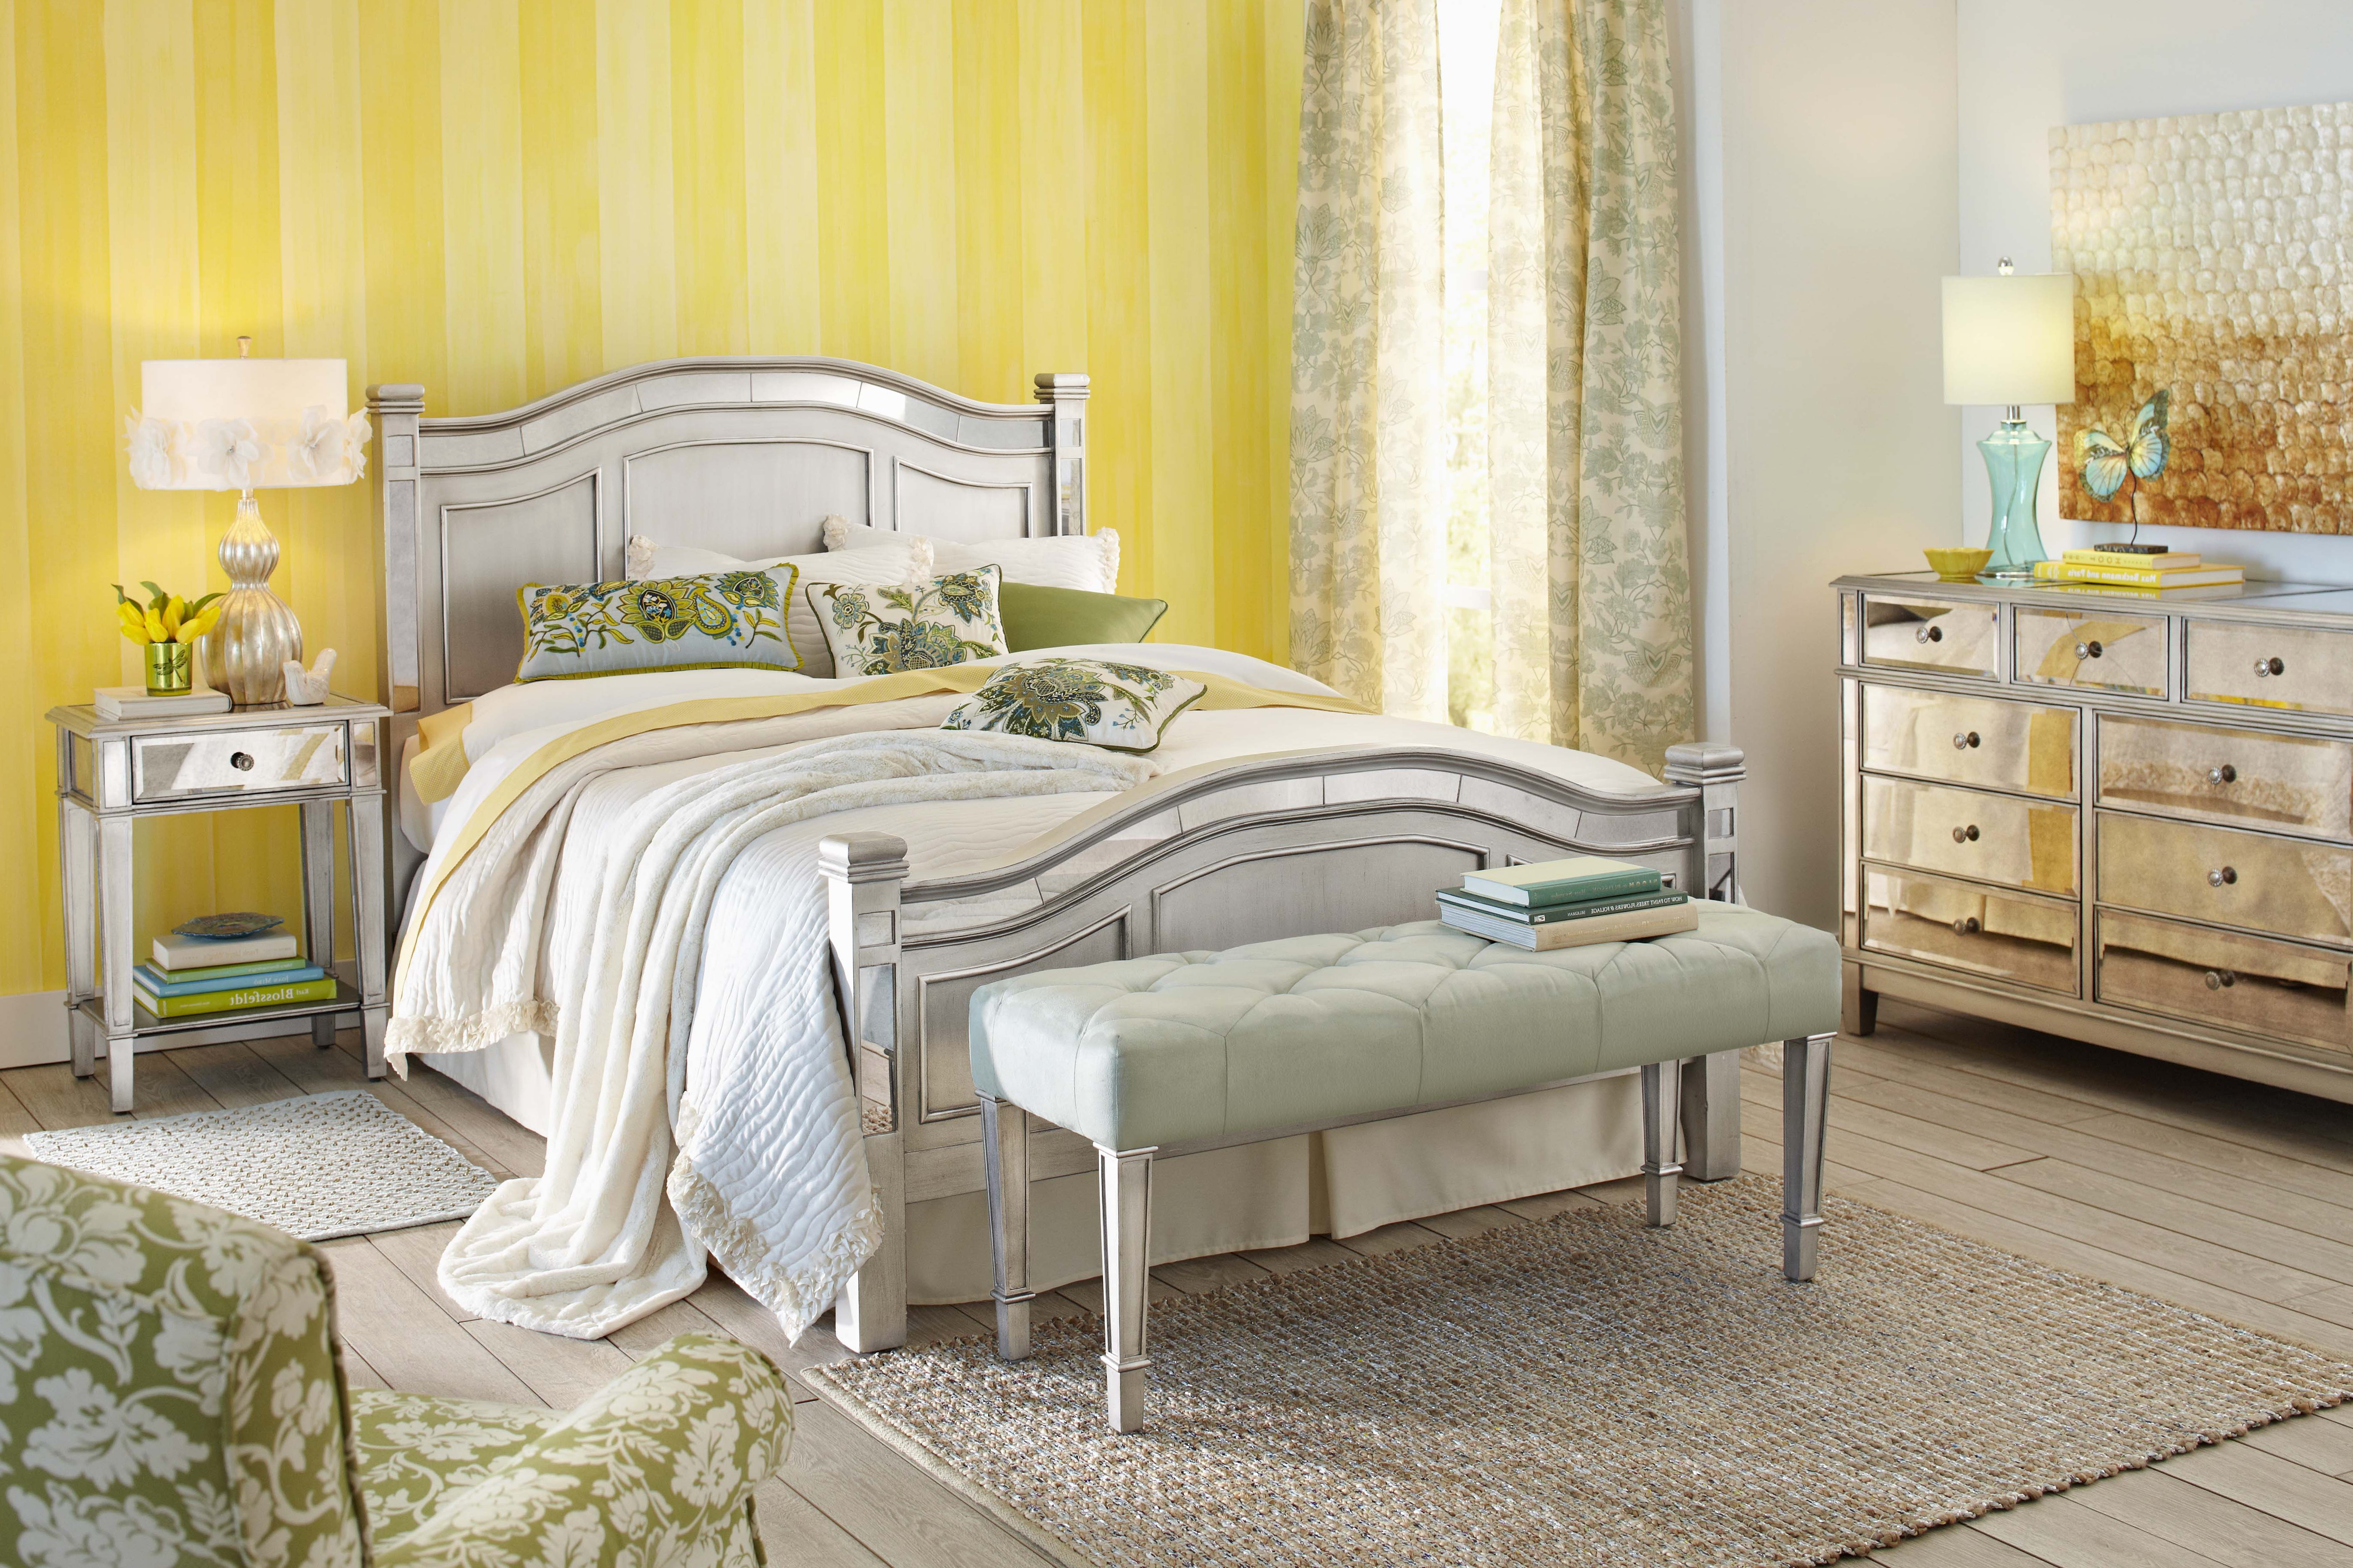 pier 1 mirrored bedroom furniture | hawk haven